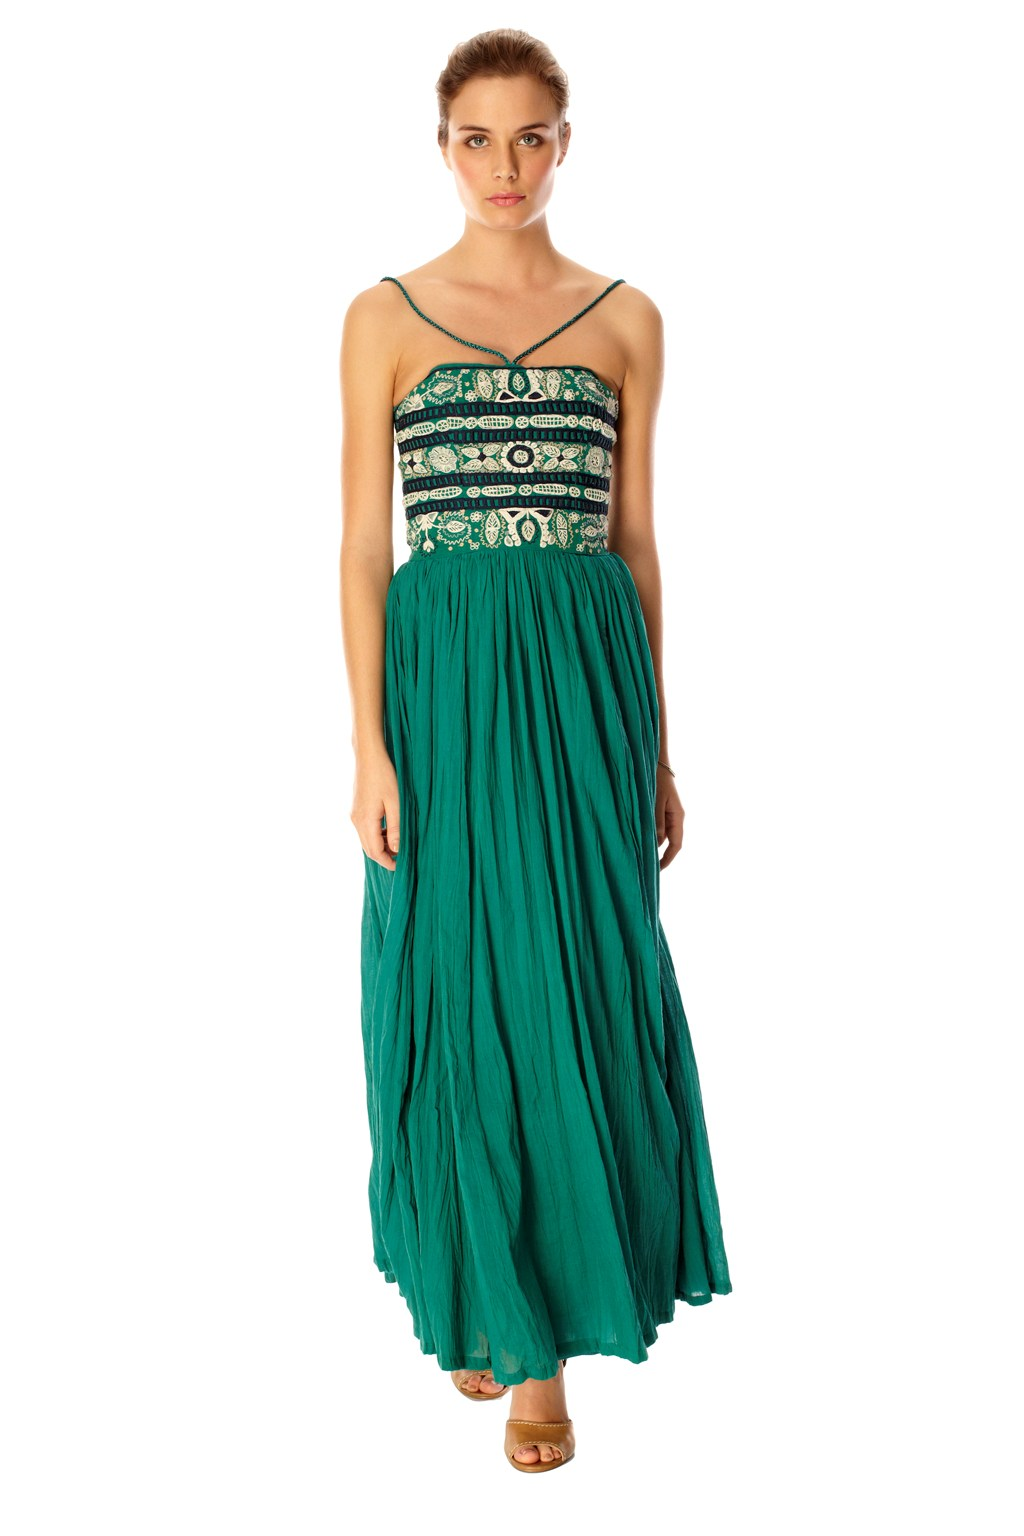 Maxi dresses with sleeves for weddings with sleeves for Plus size maxi dresses for summer wedding